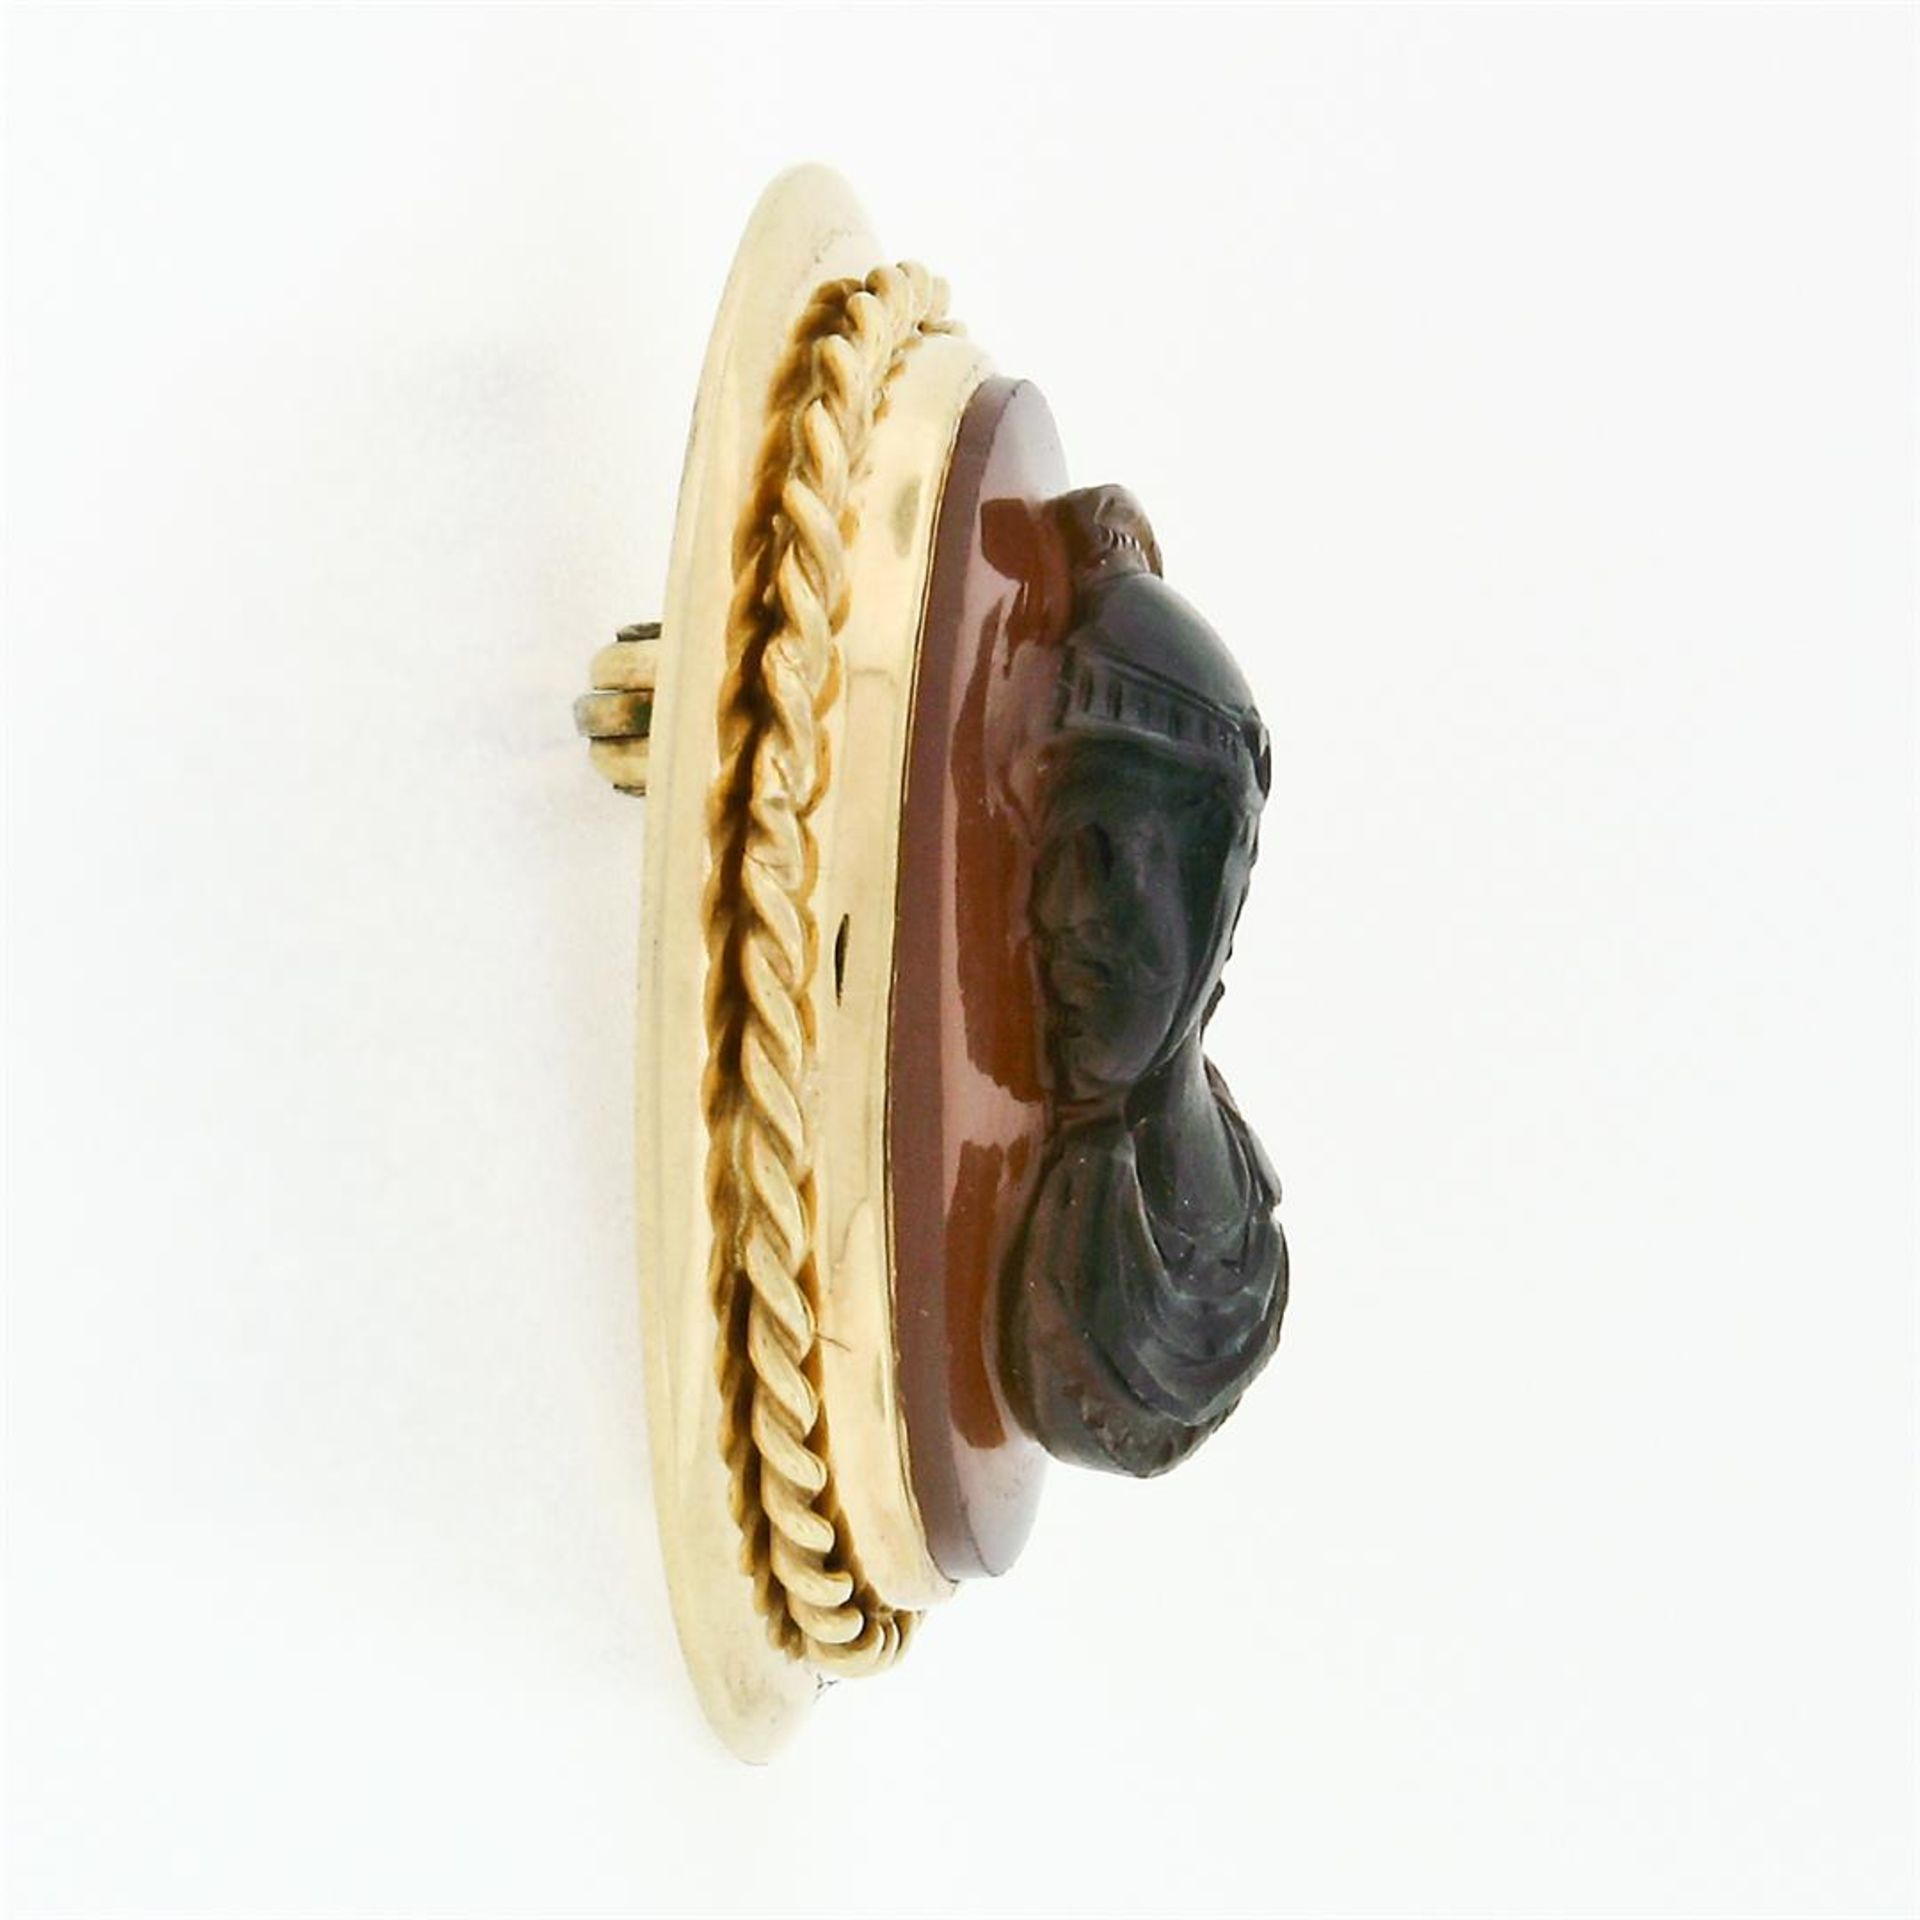 Vintage 14k Gold Carved Brown Agate Trojan Twisted Wire Frame Pin Brooch Pendant - Image 4 of 6